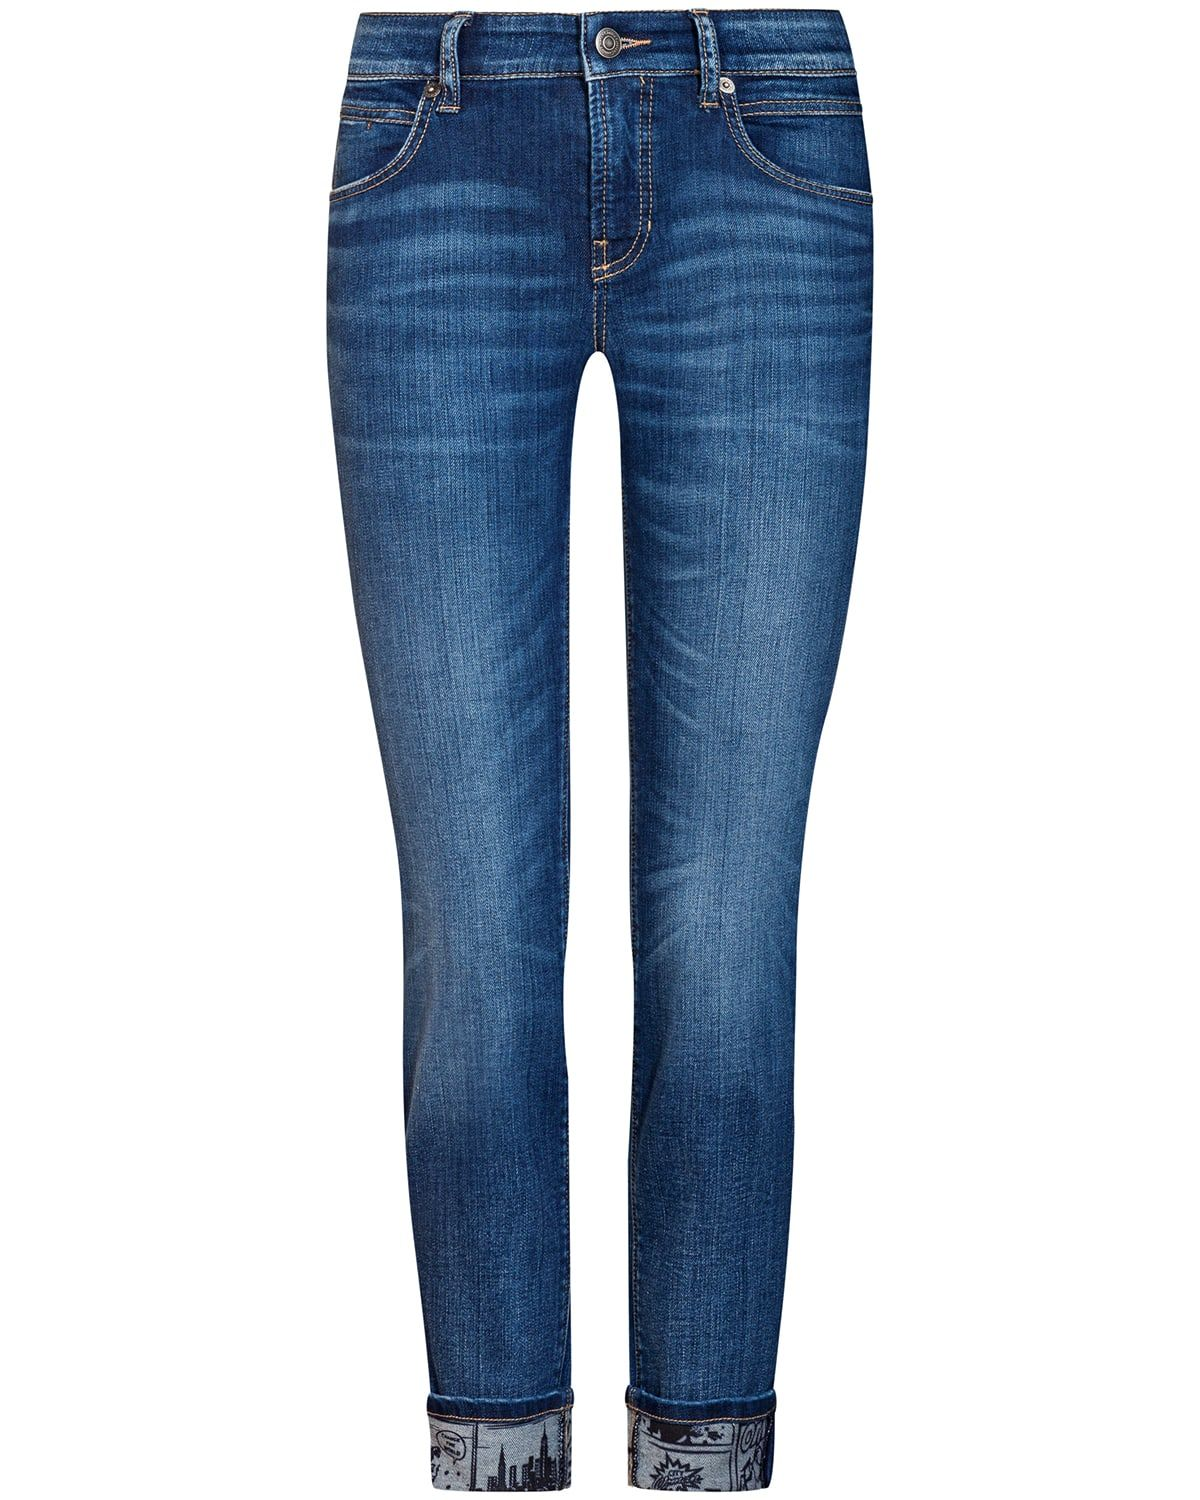 fd90bc6dcbb Cambio Pina 7 8-Jeans Mid Rise